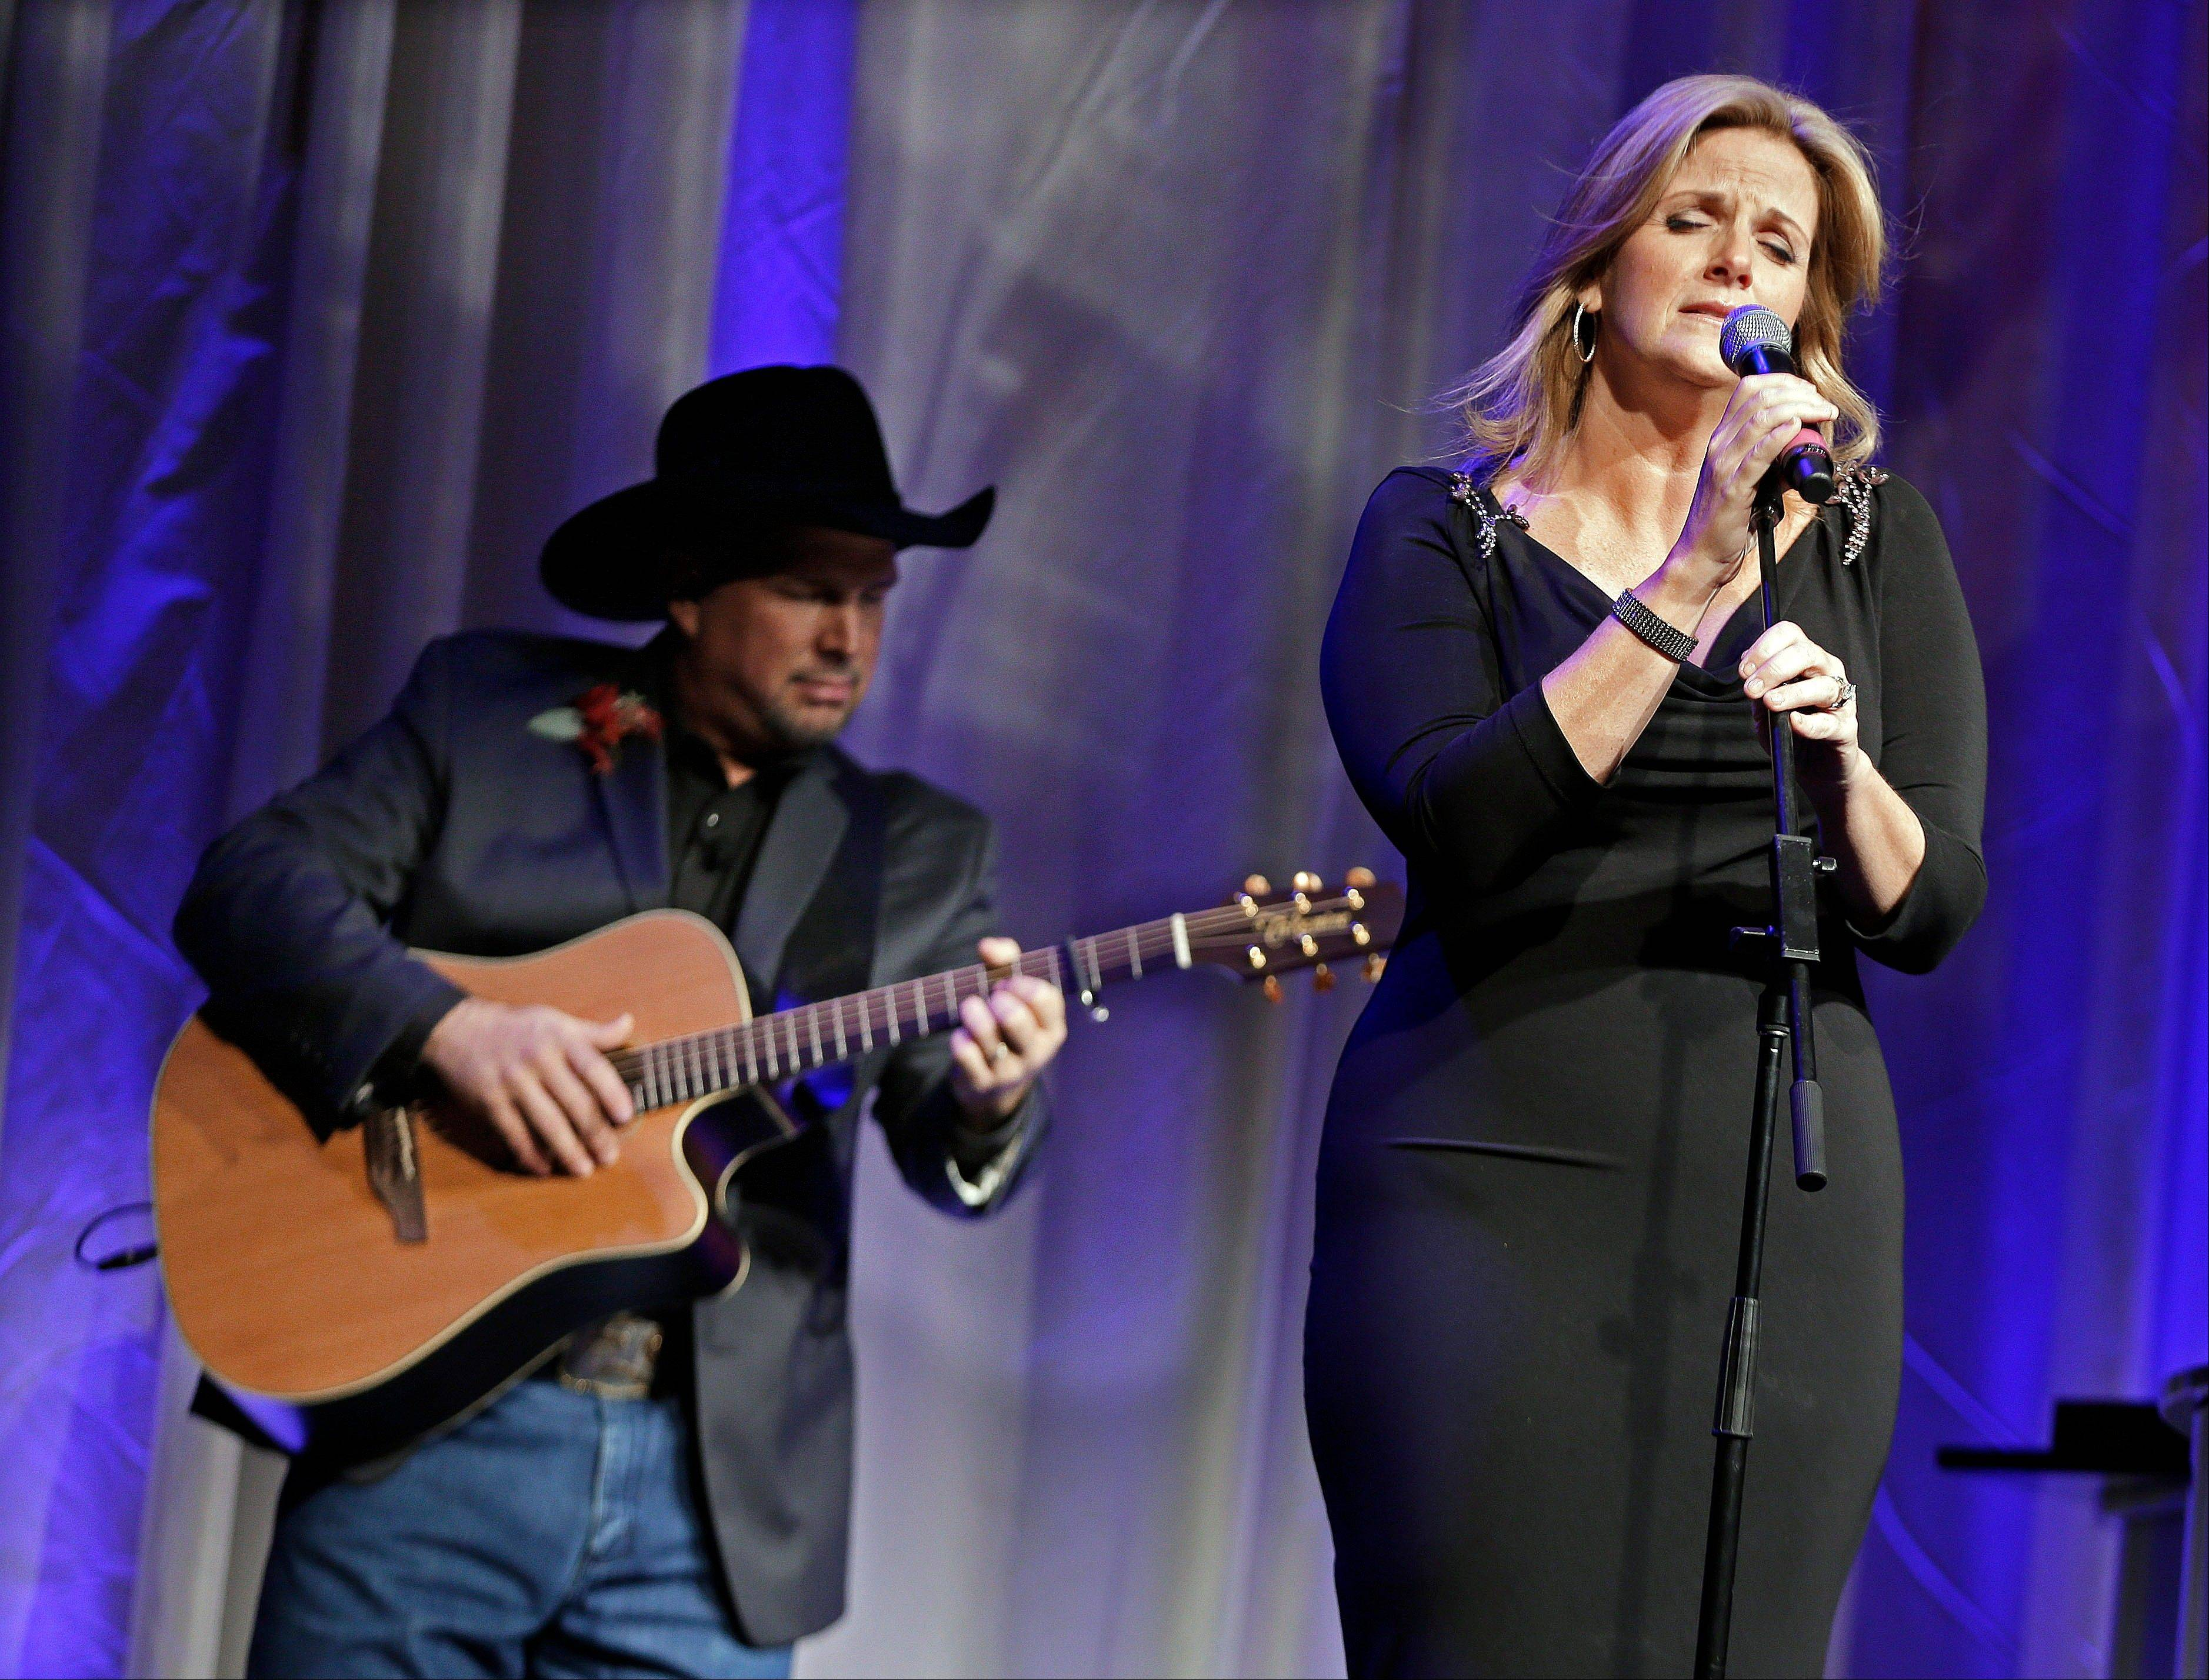 Trisha Yearwood is accompanied by her husband, Garth Brooks, as she sings �Wind Beneath My Wings,� a song written by Larry Henley, as Henley was inducted into the Nashville Songwriters Hall of Fame on Sunday.